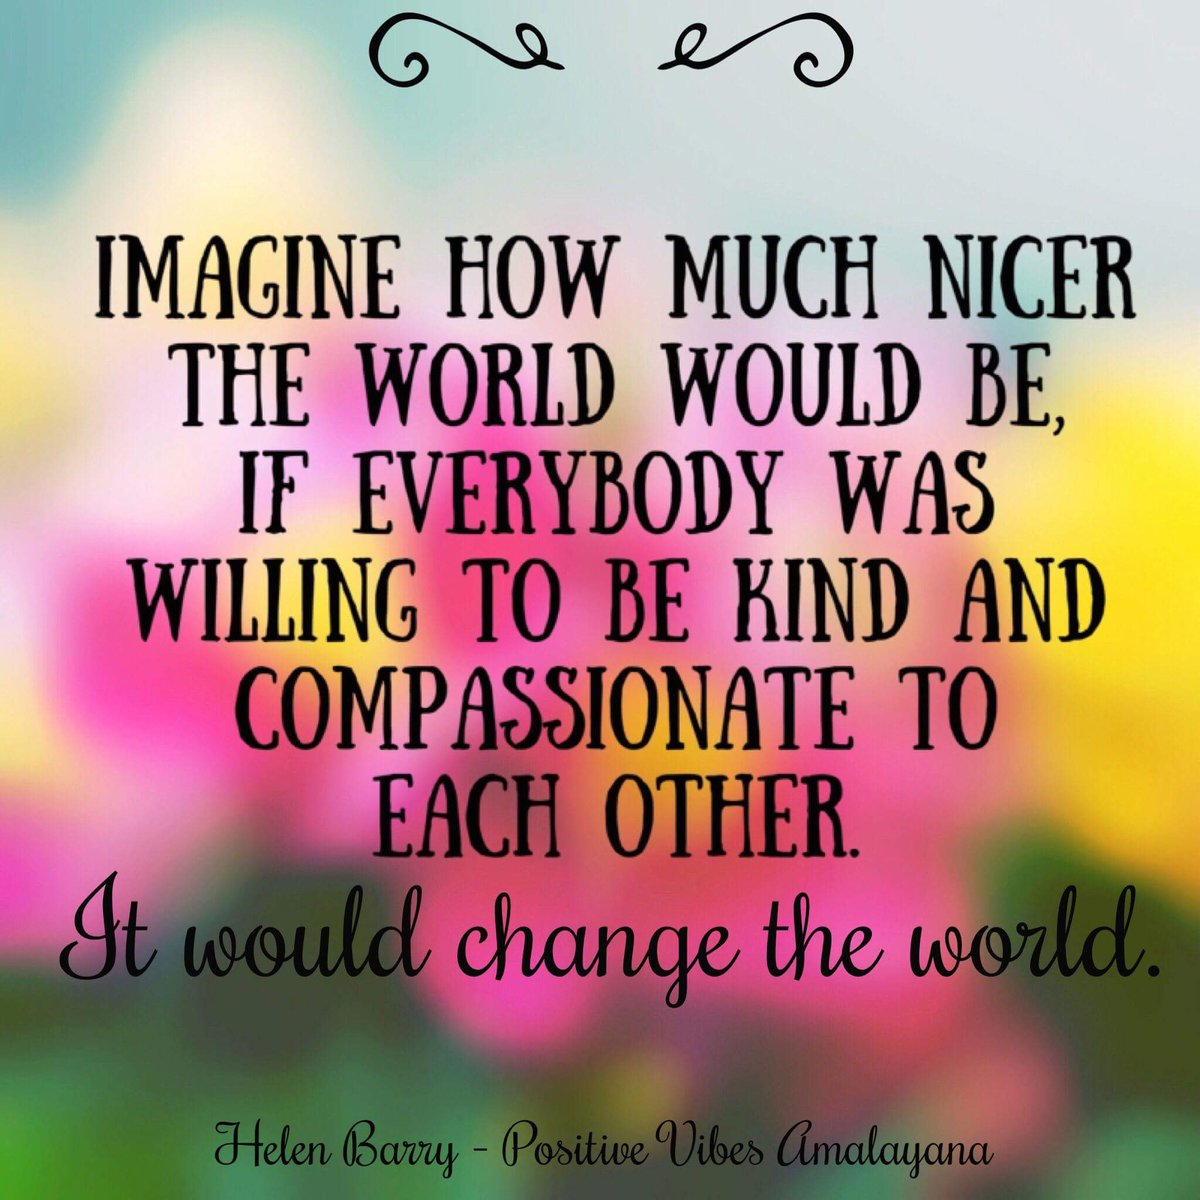 #Image How Much Nicer The #World Would Be, If Everybody Was Willing To Be #Kind And #Compassionate To Each Other. It Would #Change The World. - Helen Barry #ThinkBIGSundayWithMarsha<br>http://pic.twitter.com/tw7pwbHbFZ